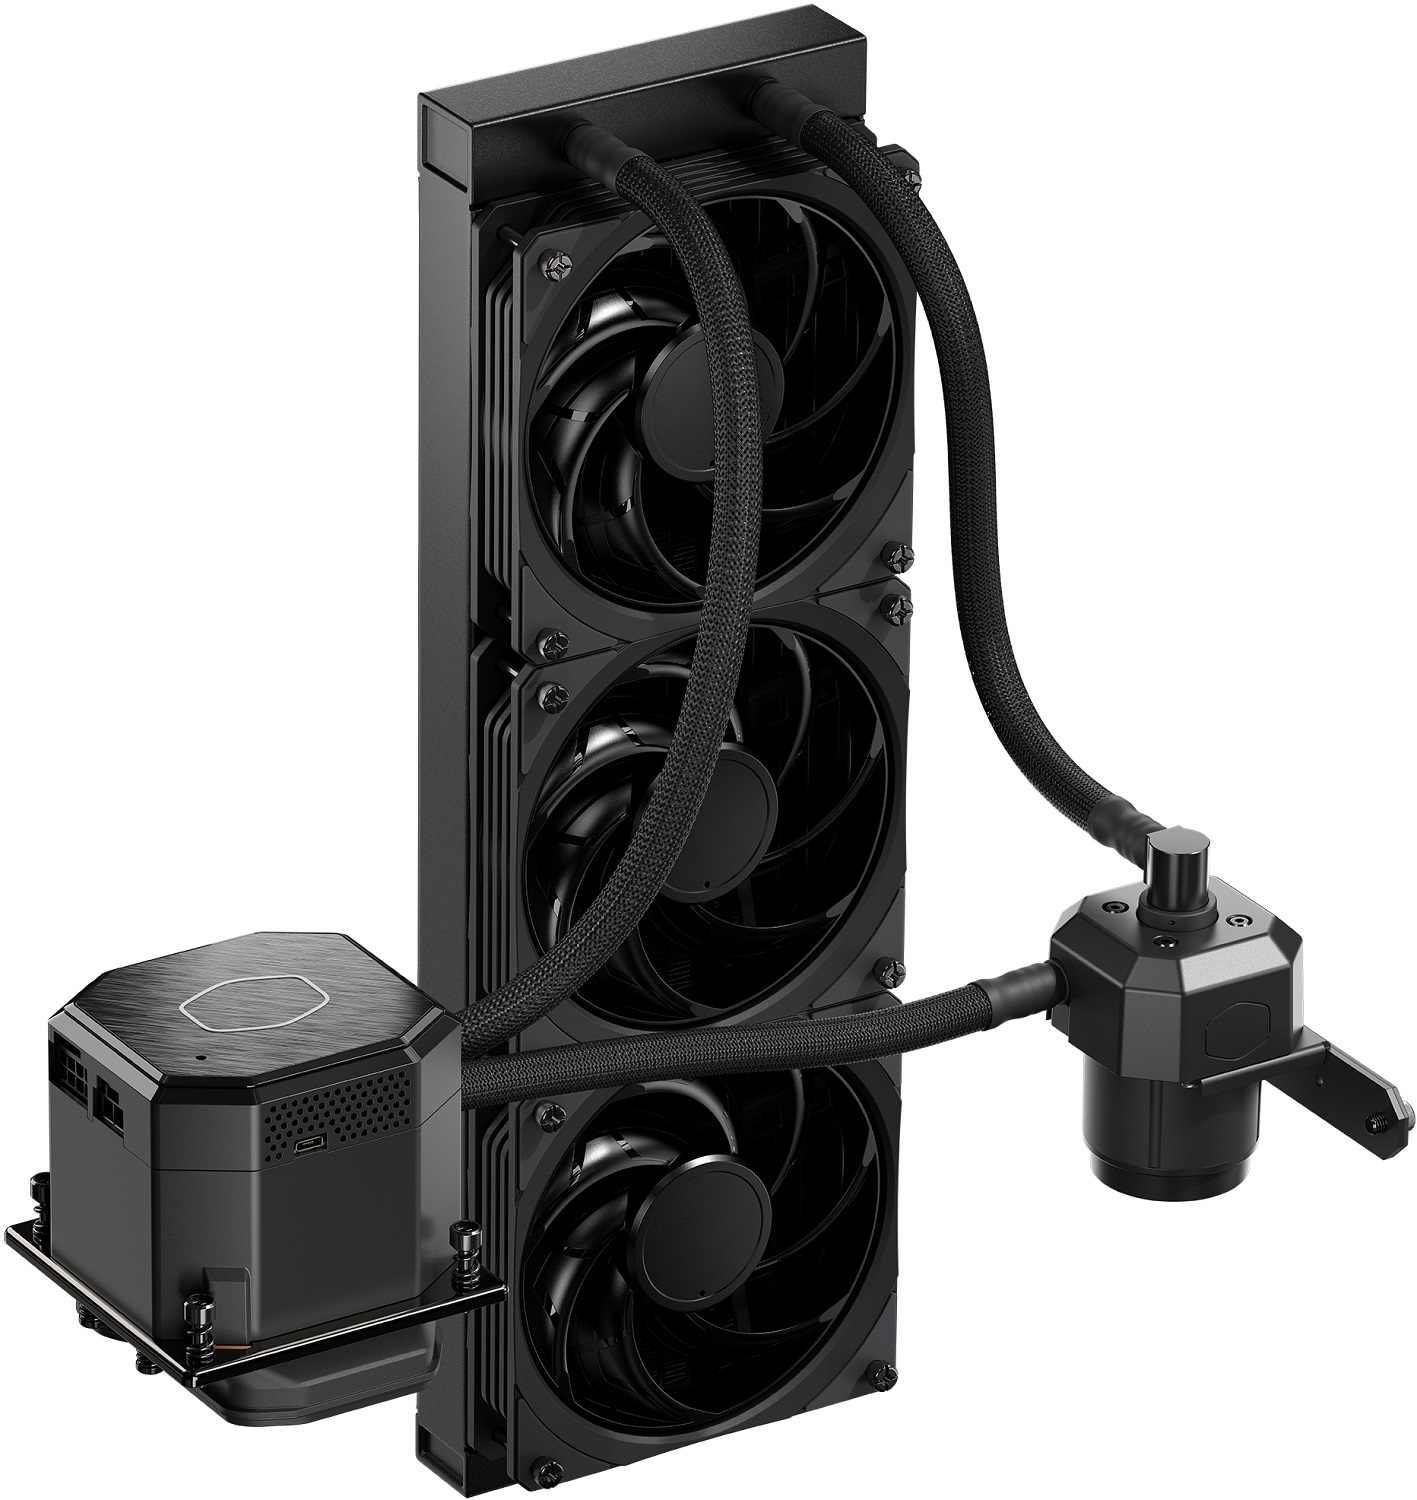 Cooler Master MasterLiquid ML360 Sub-Zero